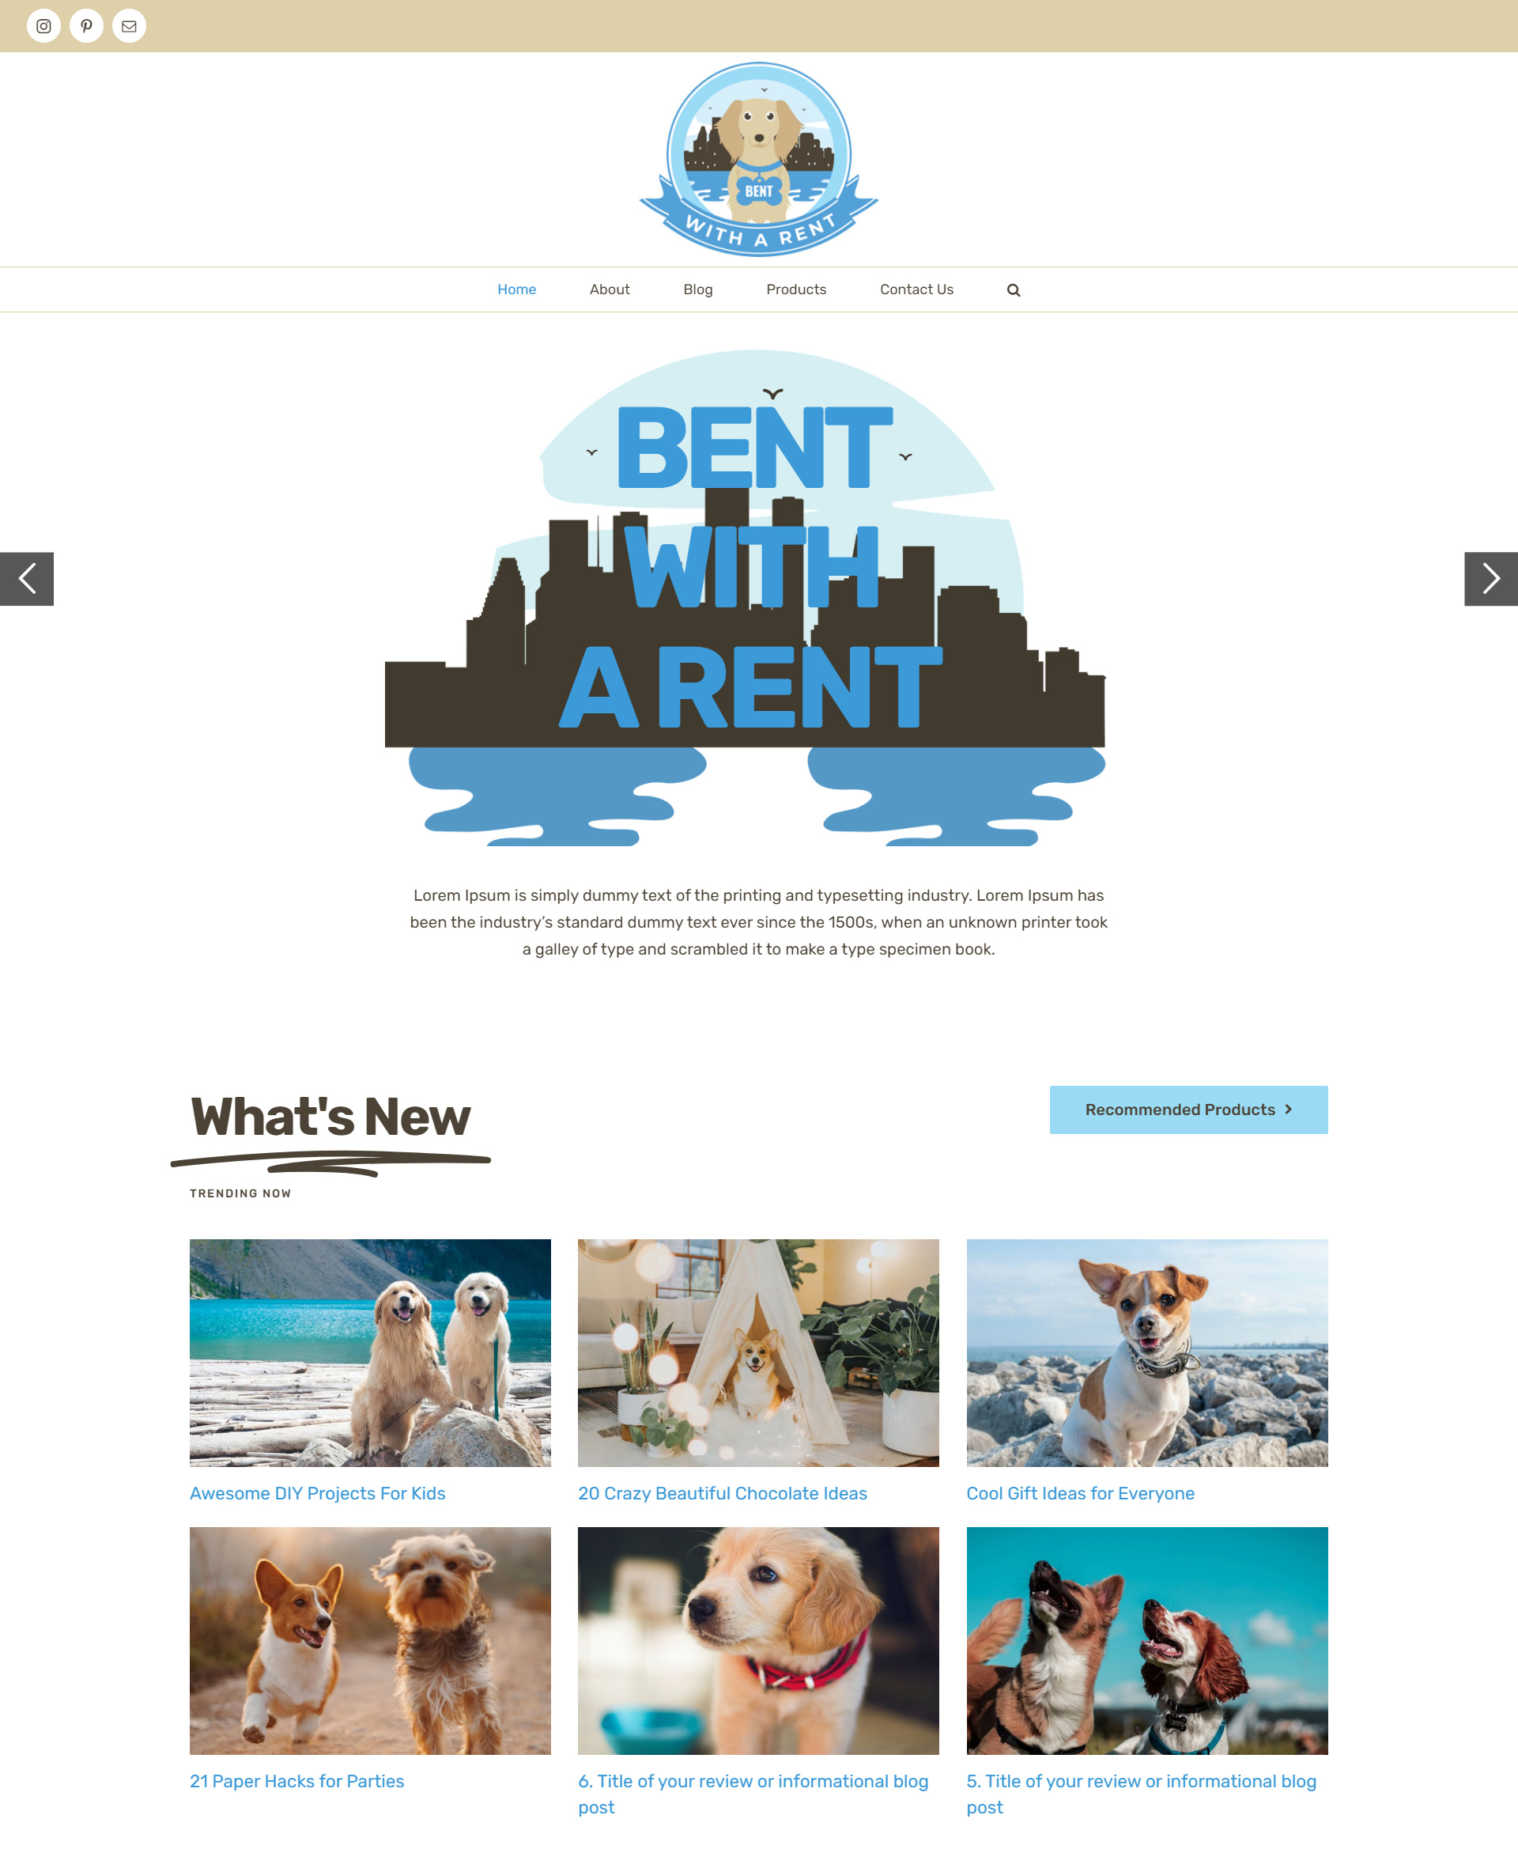 bent-with-a-rent